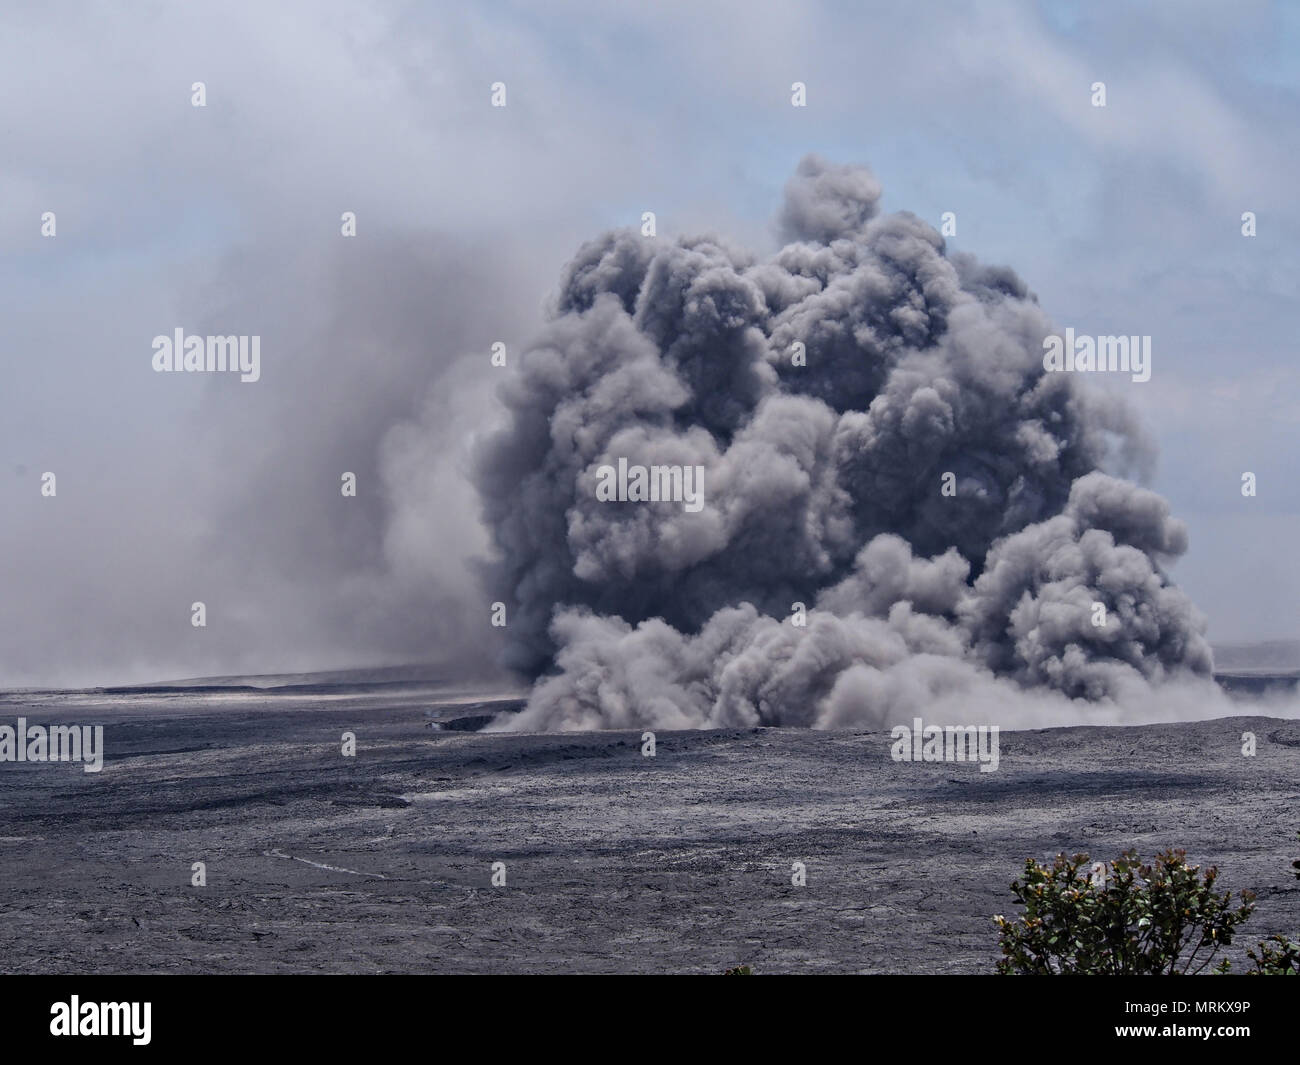 An ash plumes rises thousands of feet at the summit of the Kilauea volcano May 23, 2018 in Pahoa, Hawaii. Stock Photo